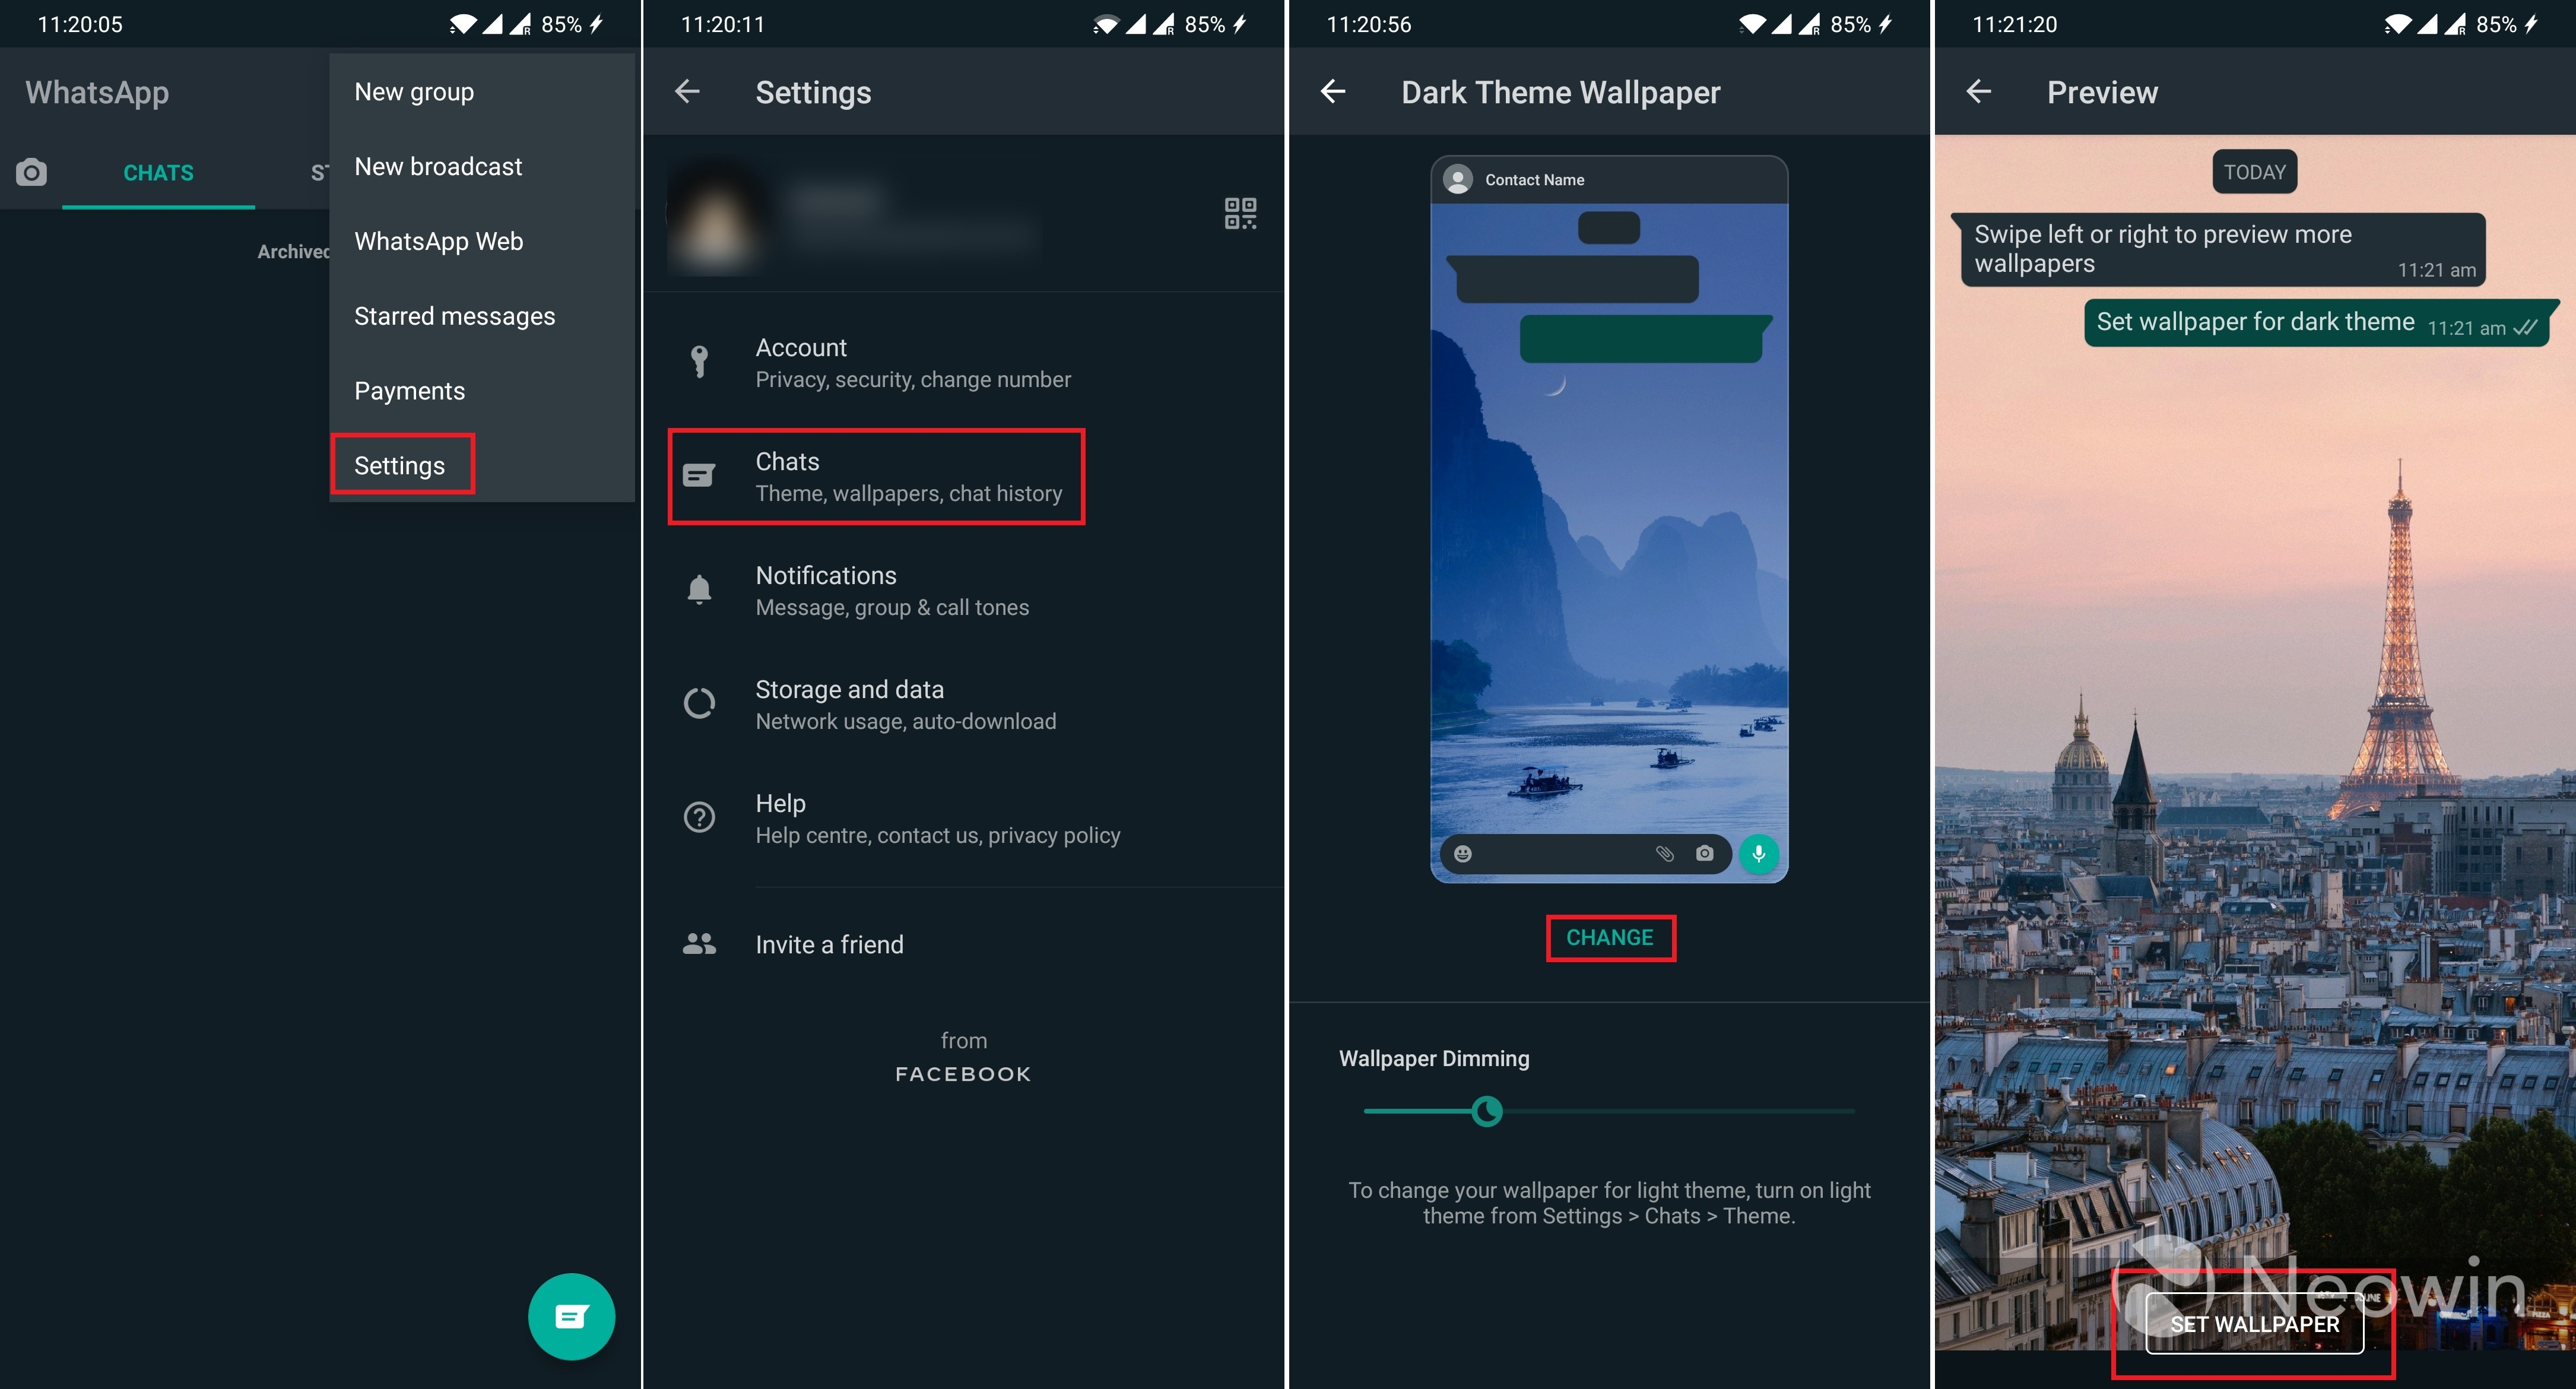 WhatsApp users can now set different wallpapers for ...